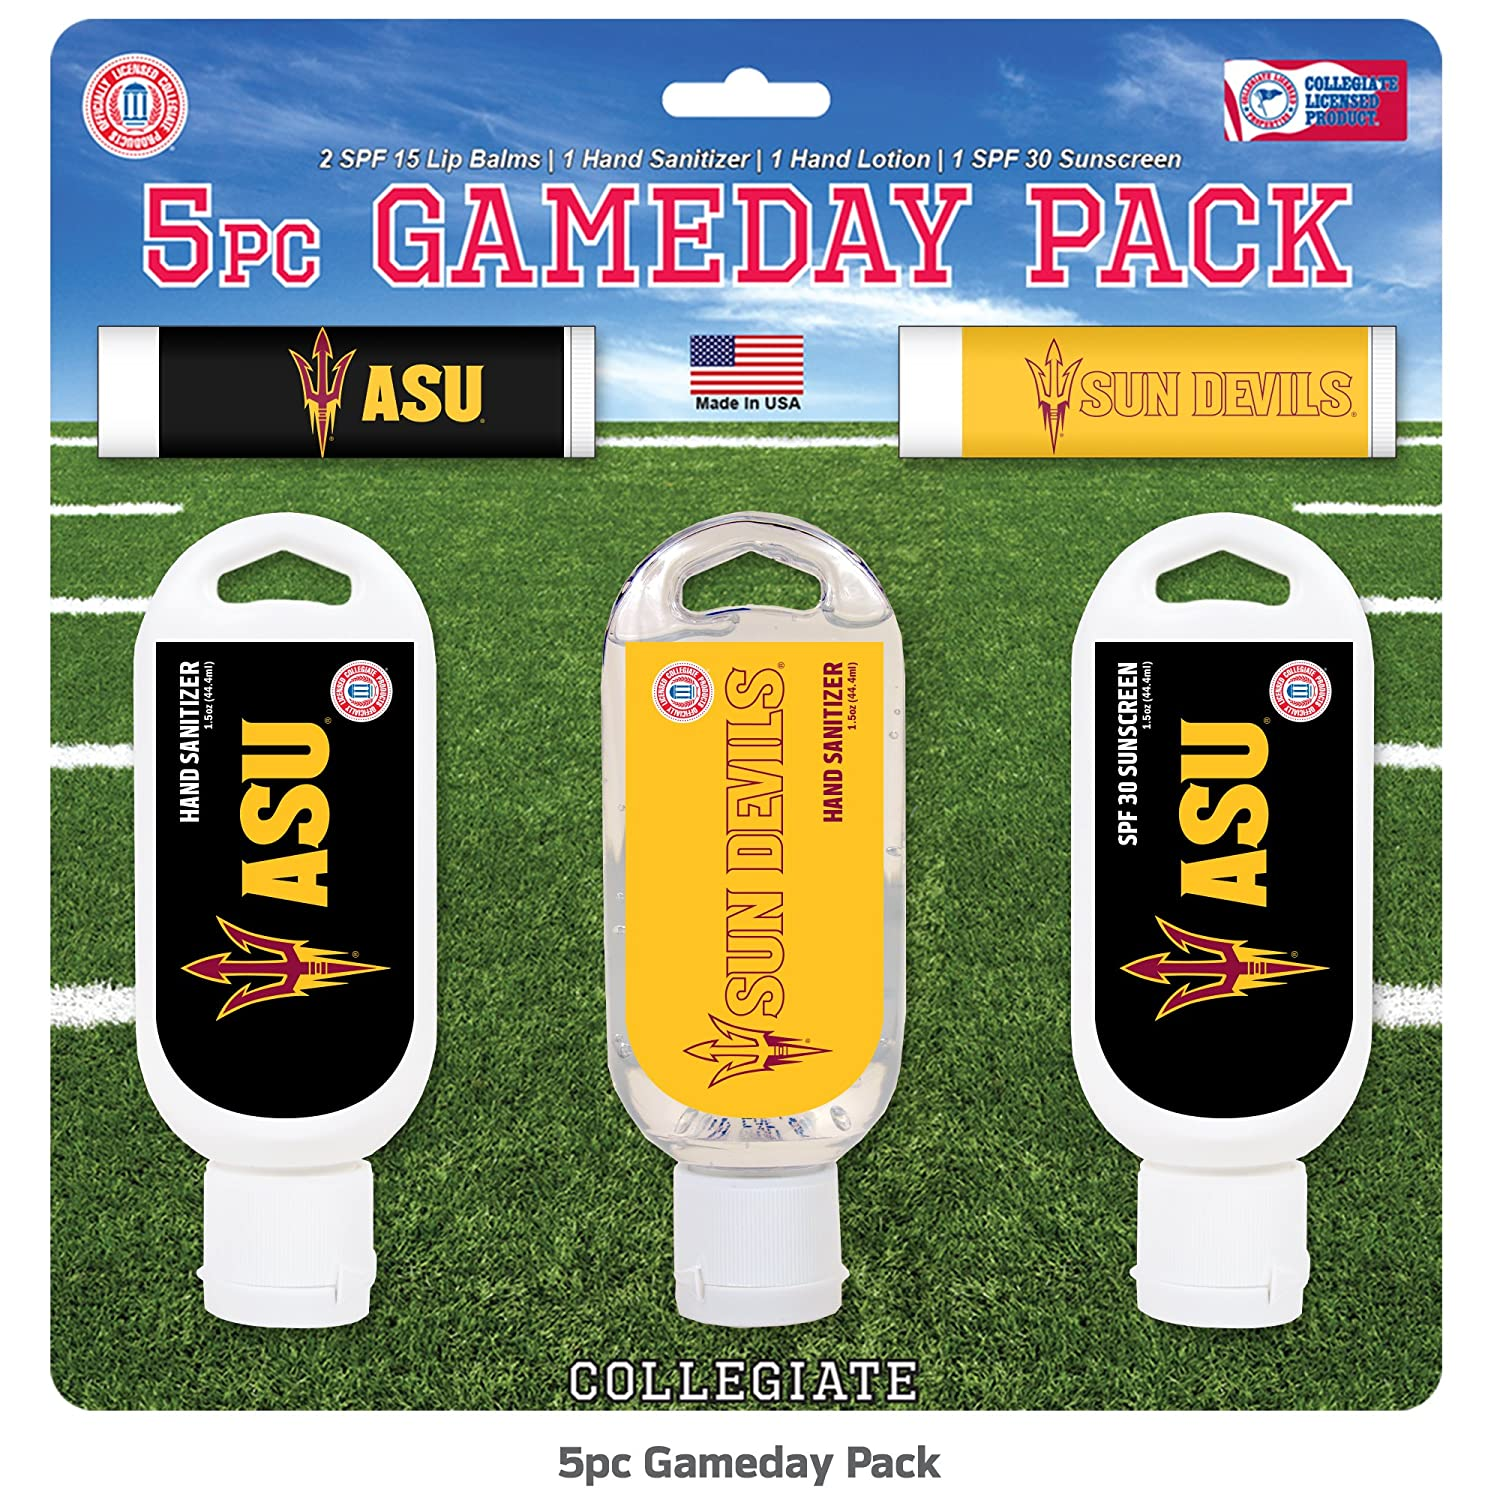 Worthy Promotional NCAA Game Day 5-Pack with 2 Lip Balms, 2 Hand Sanitizers, 1 Hand Lotion 1 Hand Sanitizer 1 SPF 30 Sport Sunscreen Worthy Promotional Products AL-UA-5PK